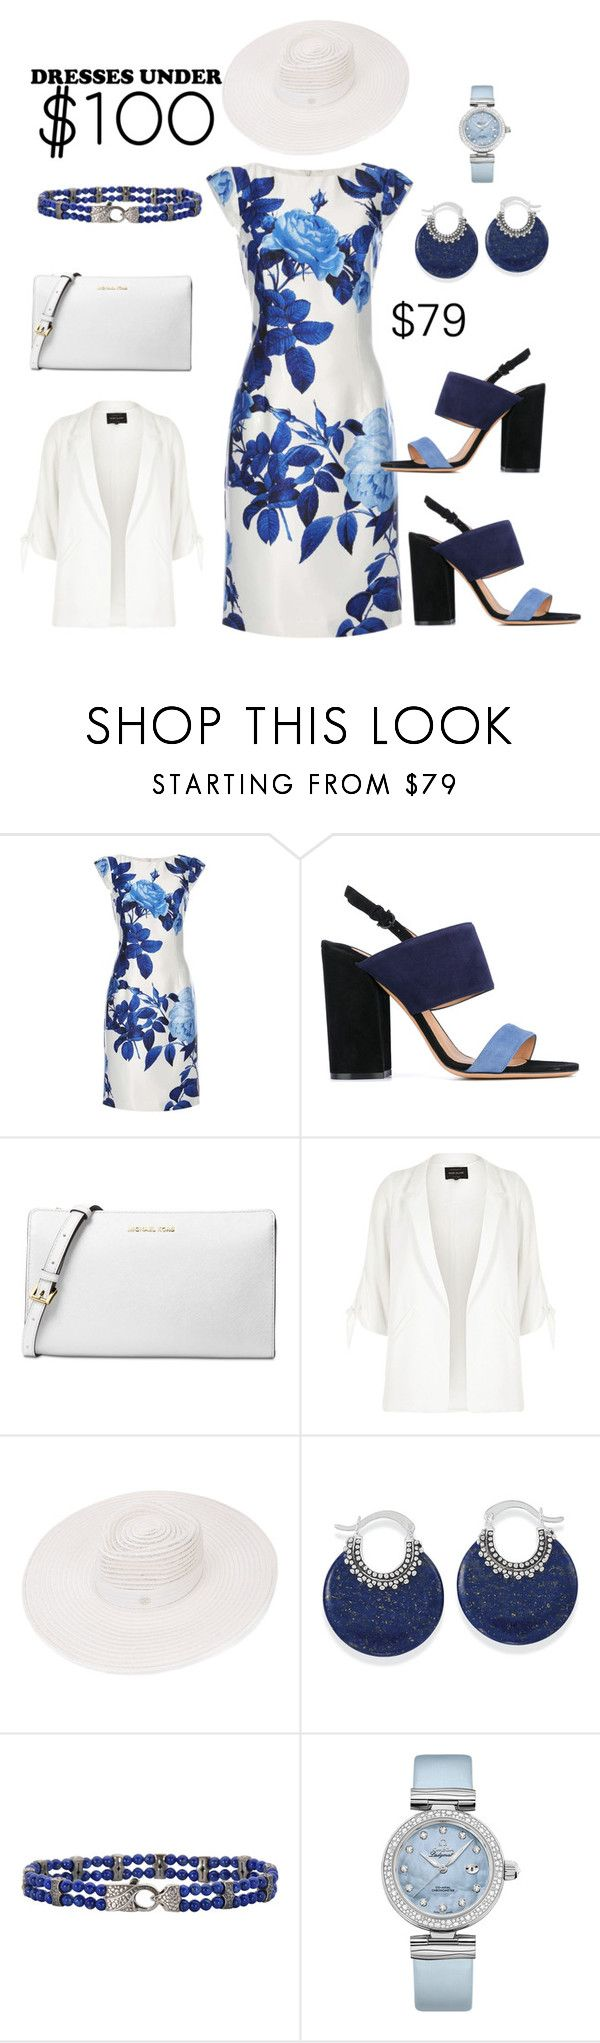 """Blue Garden"" by lulu13nyc ❤ liked on Polyvore featuring Dorothy Perkins, Salvatore Ferragamo, Michael Kors, River Island, Maison Michel, Stephen Webster and OMEGA"